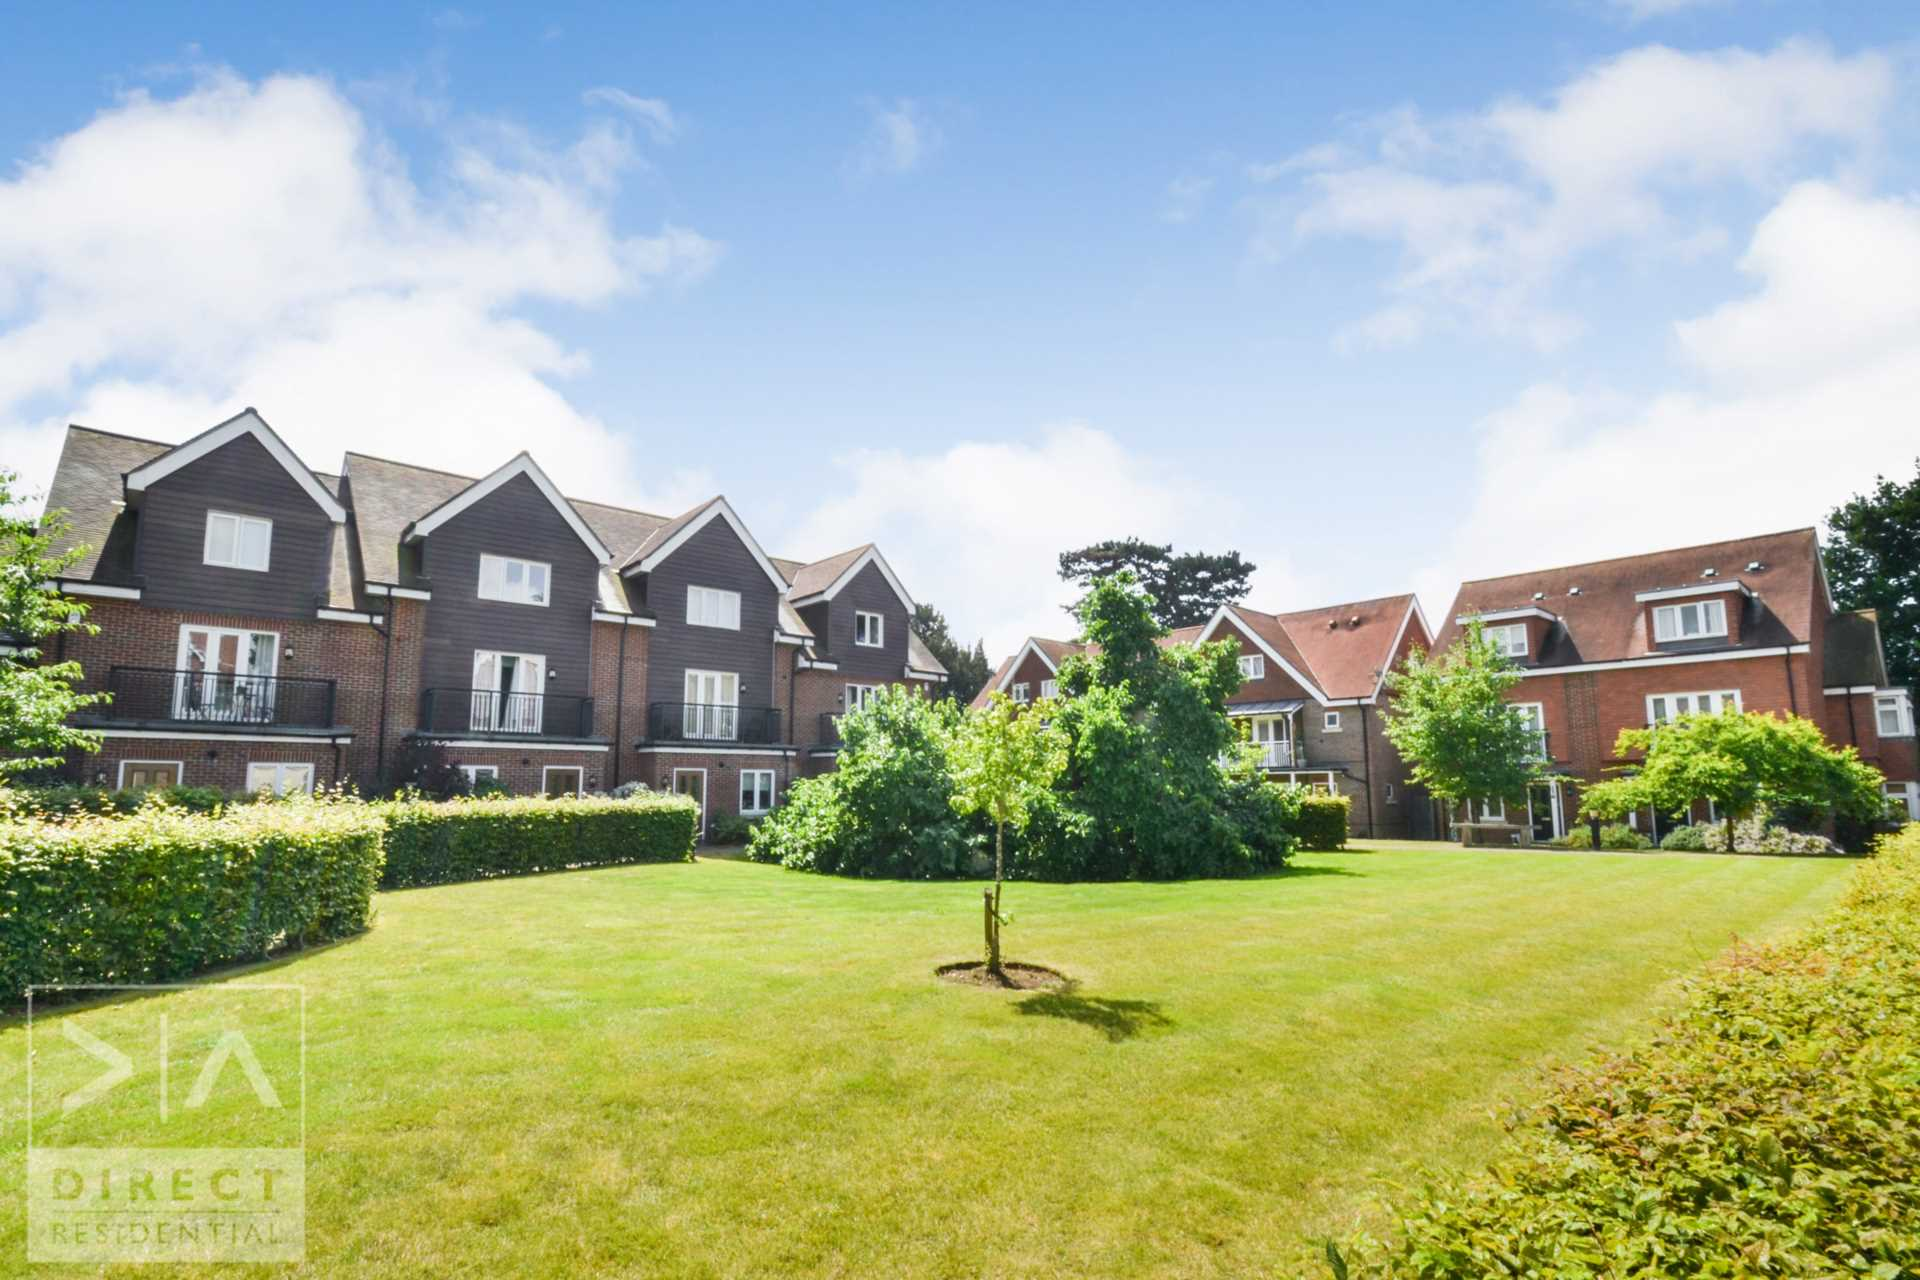 Mulberry Way, Ashtead, KT21 2FE, Image 16